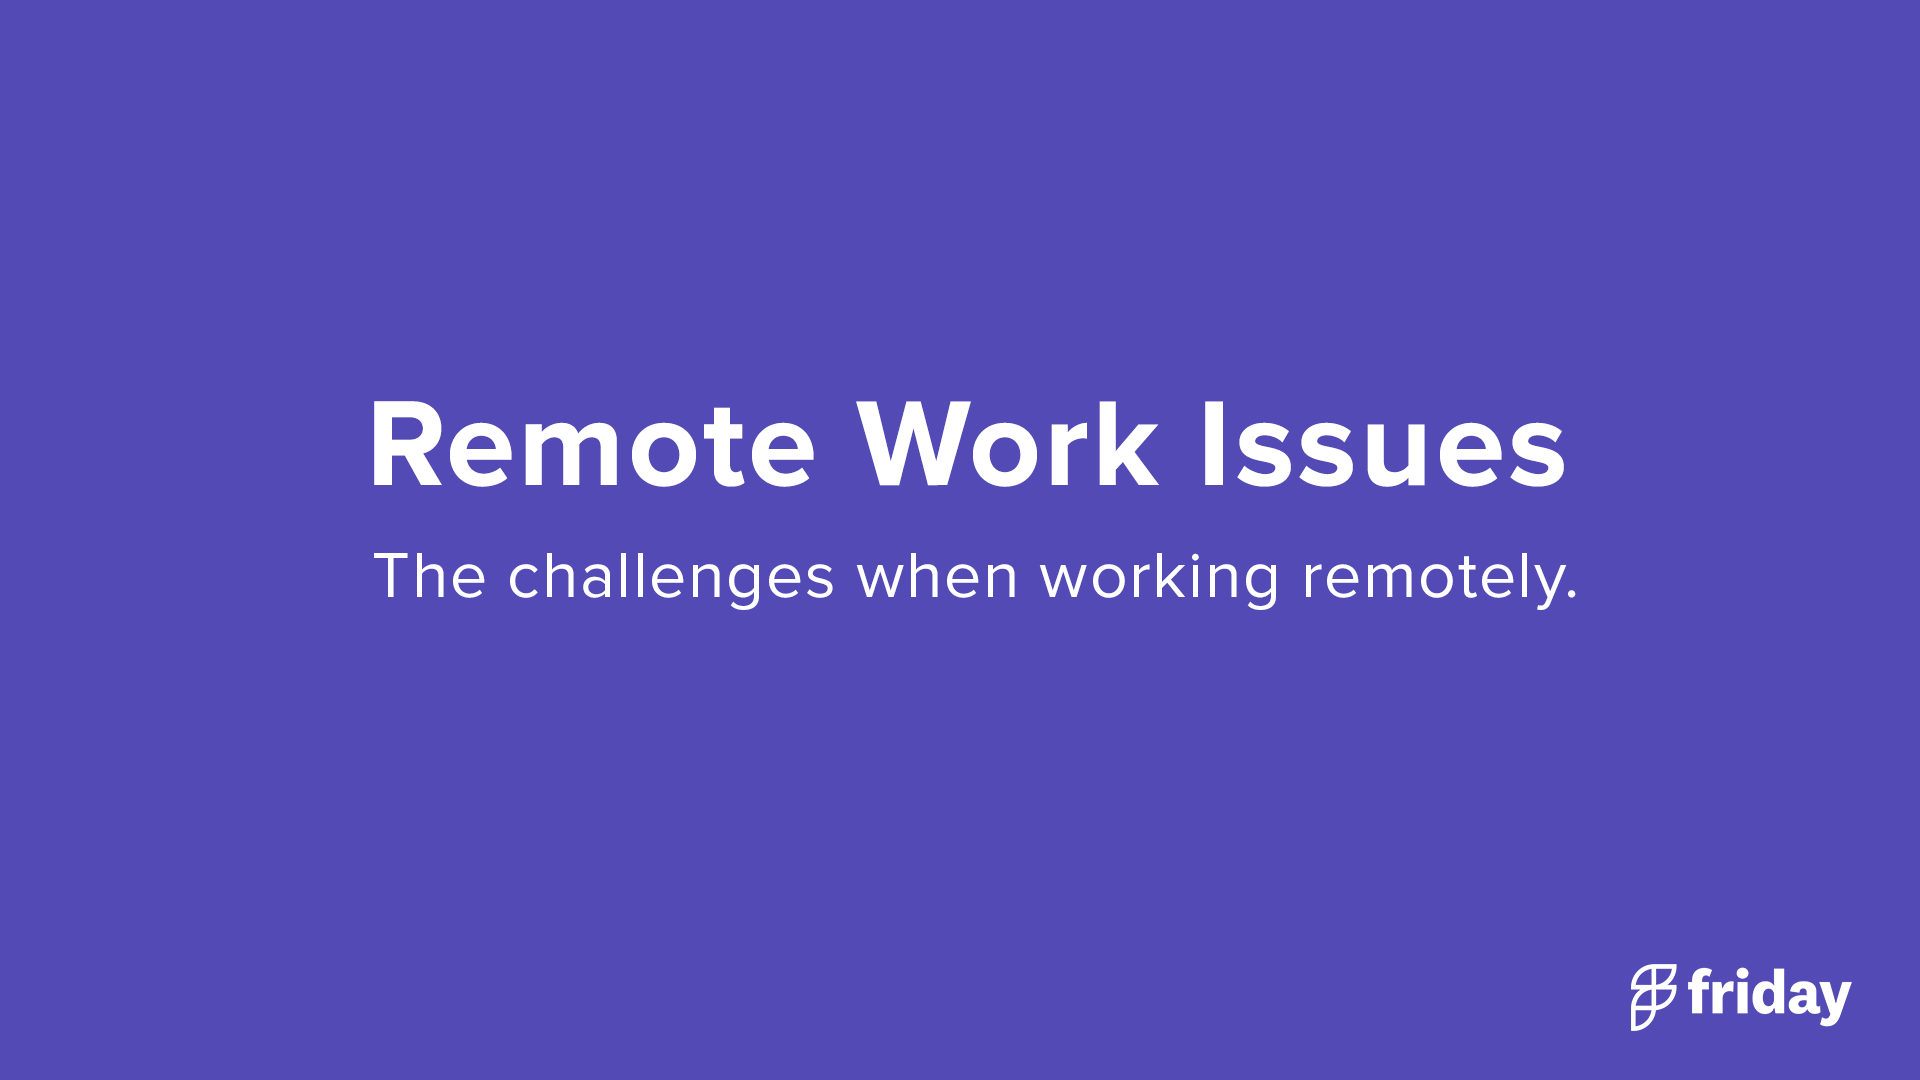 Remote Work Issues